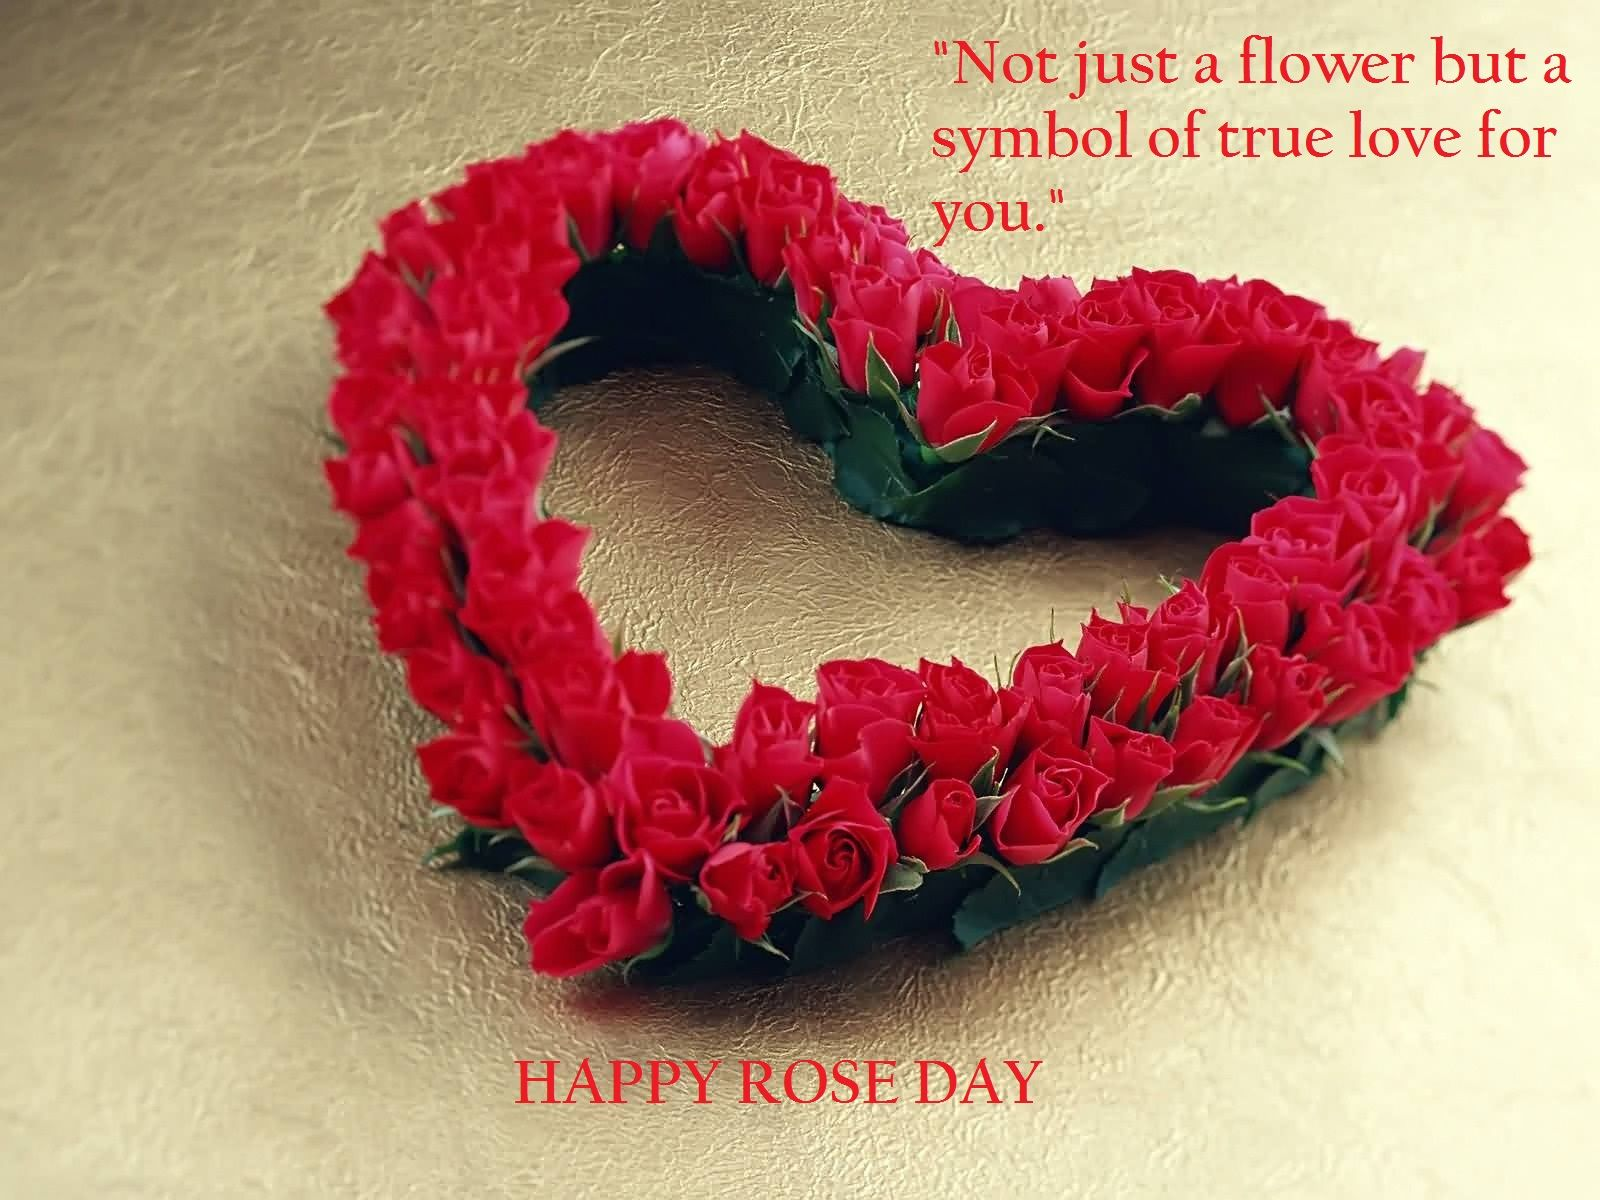 Happy Rose Day Wishes Messages Quotes And Sms For Girlfriend And Boyfriend Red Roses Free Valentine Beautiful Red Roses Images